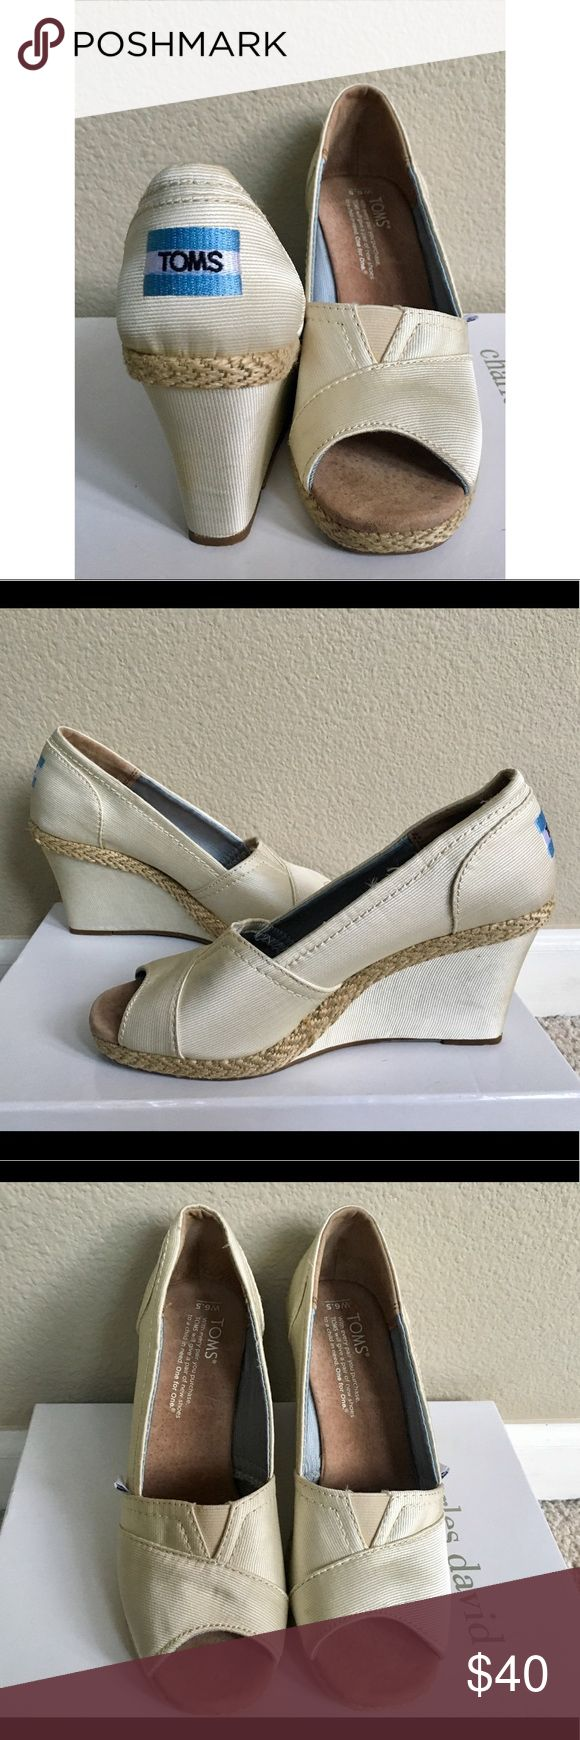 TOMS Cream Wedges - Size 6.5 Never worn. 3 inch wedge heels. Perfect casual dressy shoes. Toms Shoes Wedges